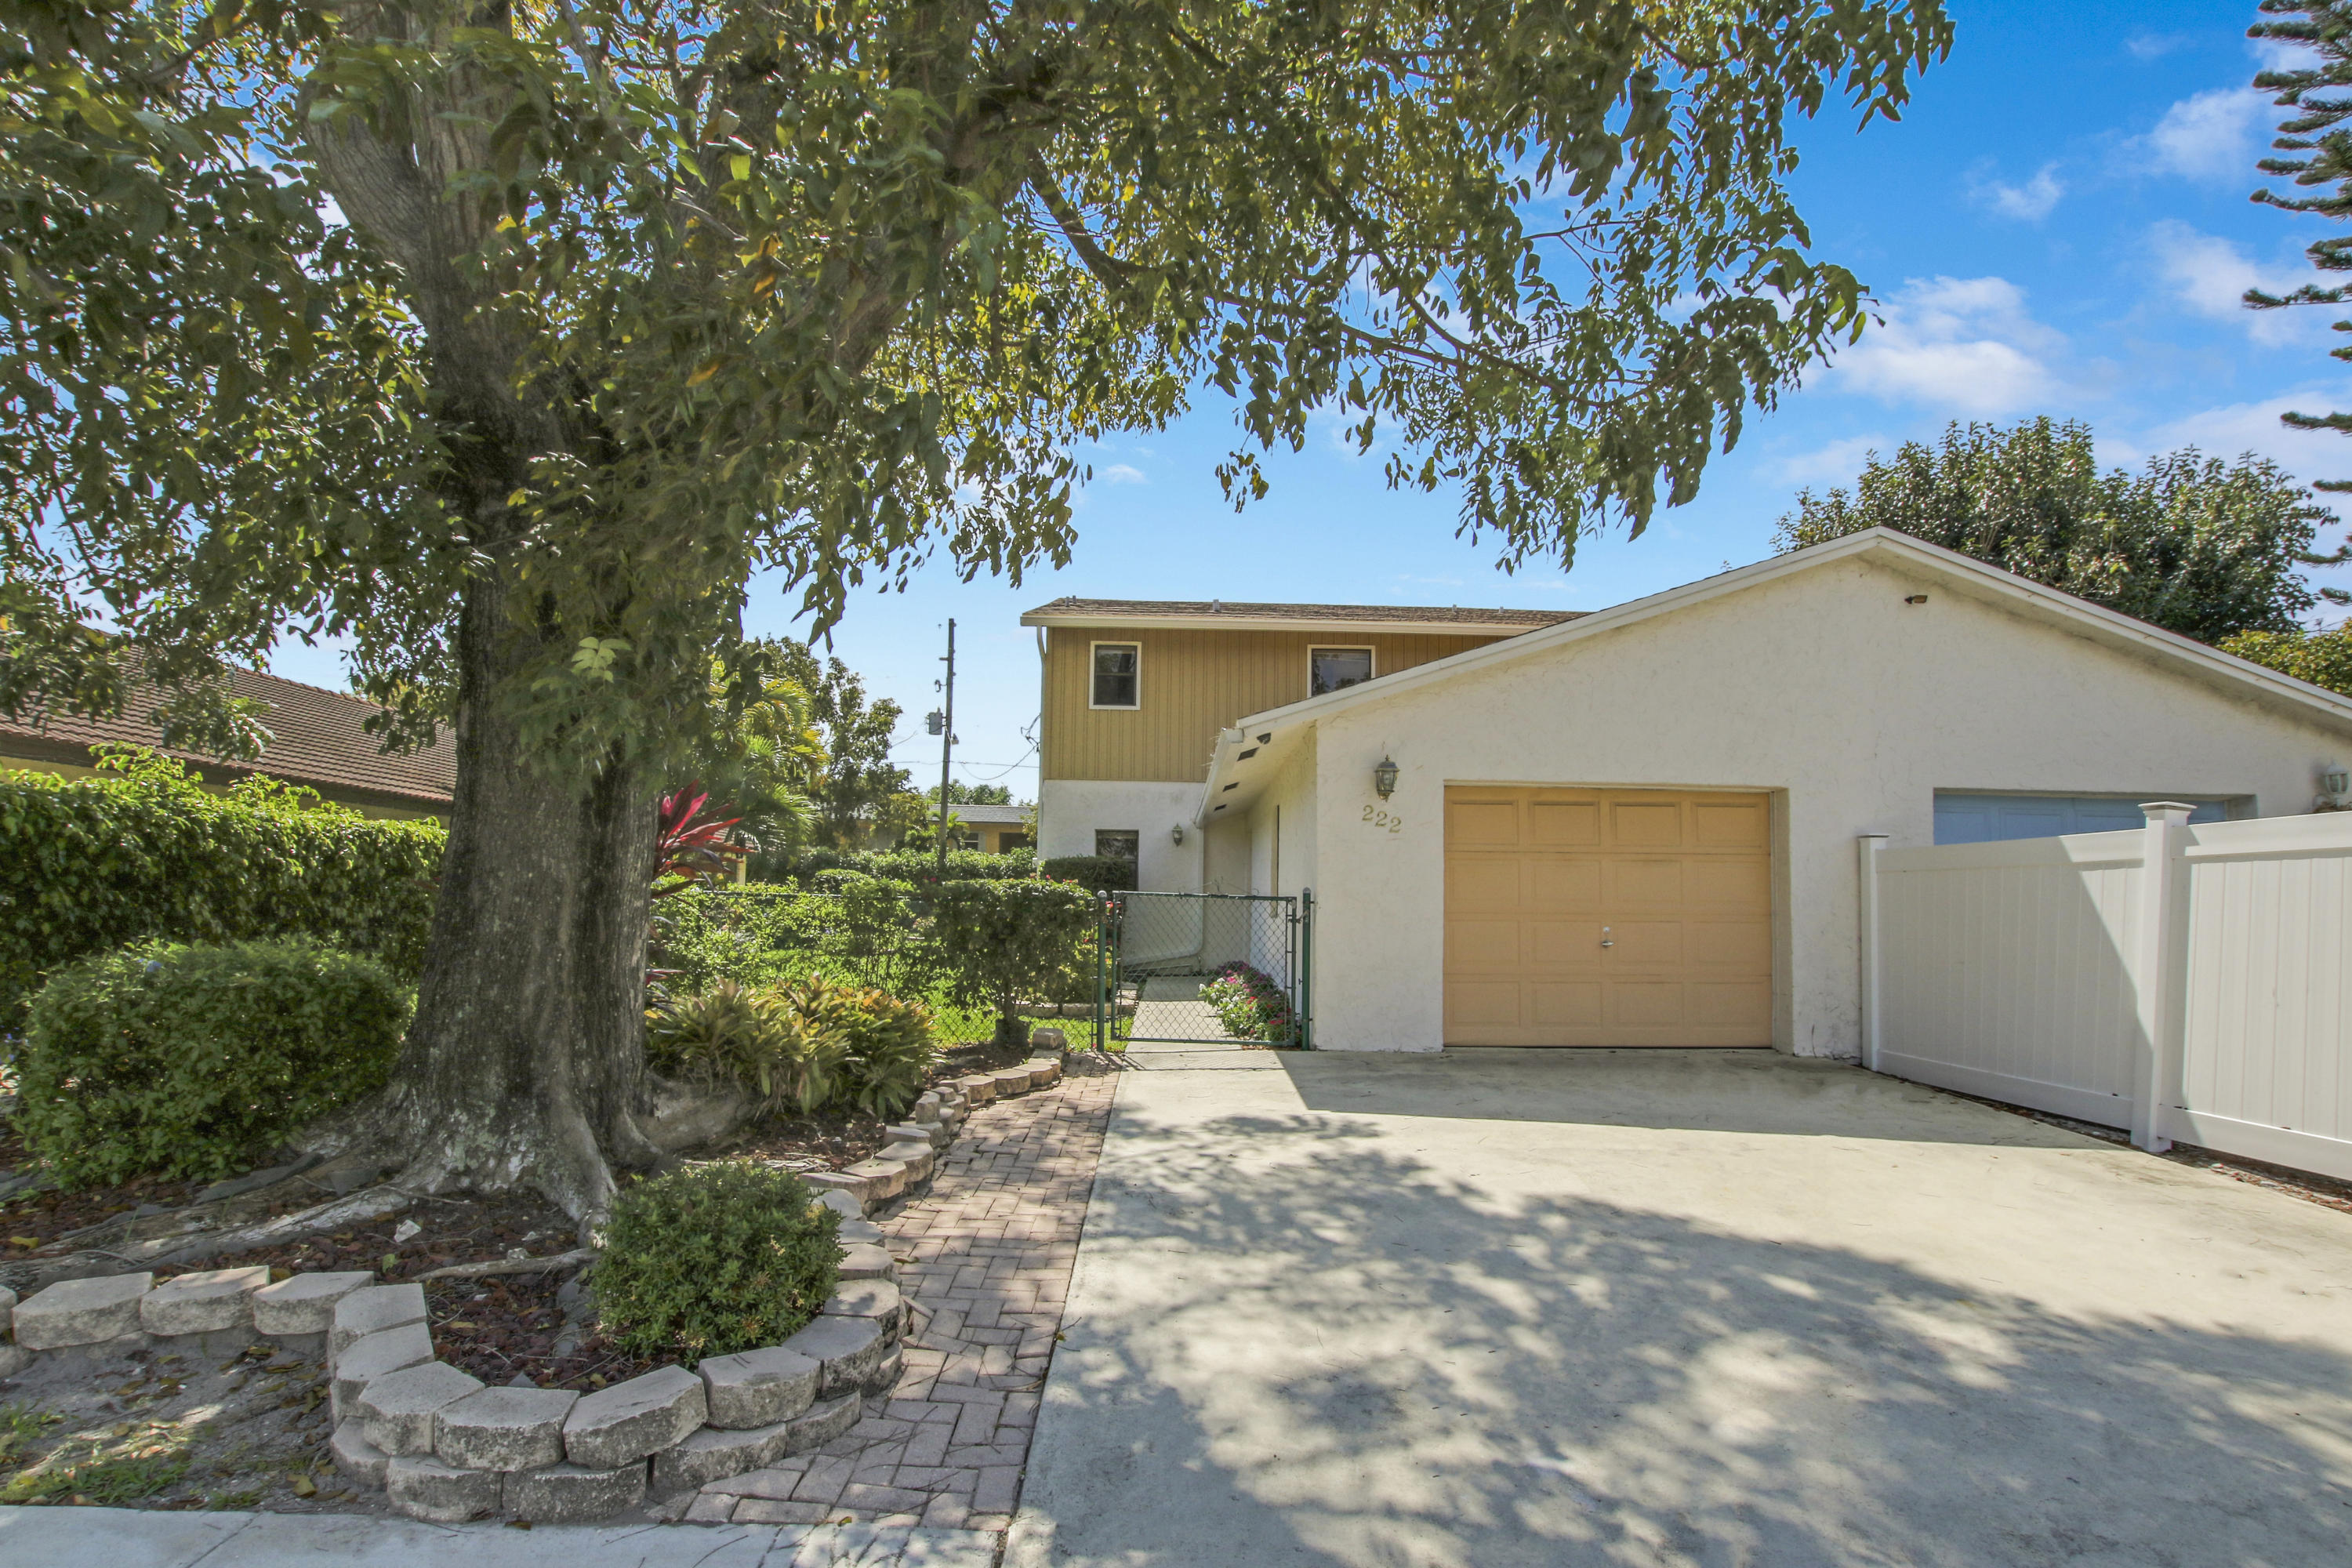 Home for sale in GRAEVE JT Delray Beach Florida